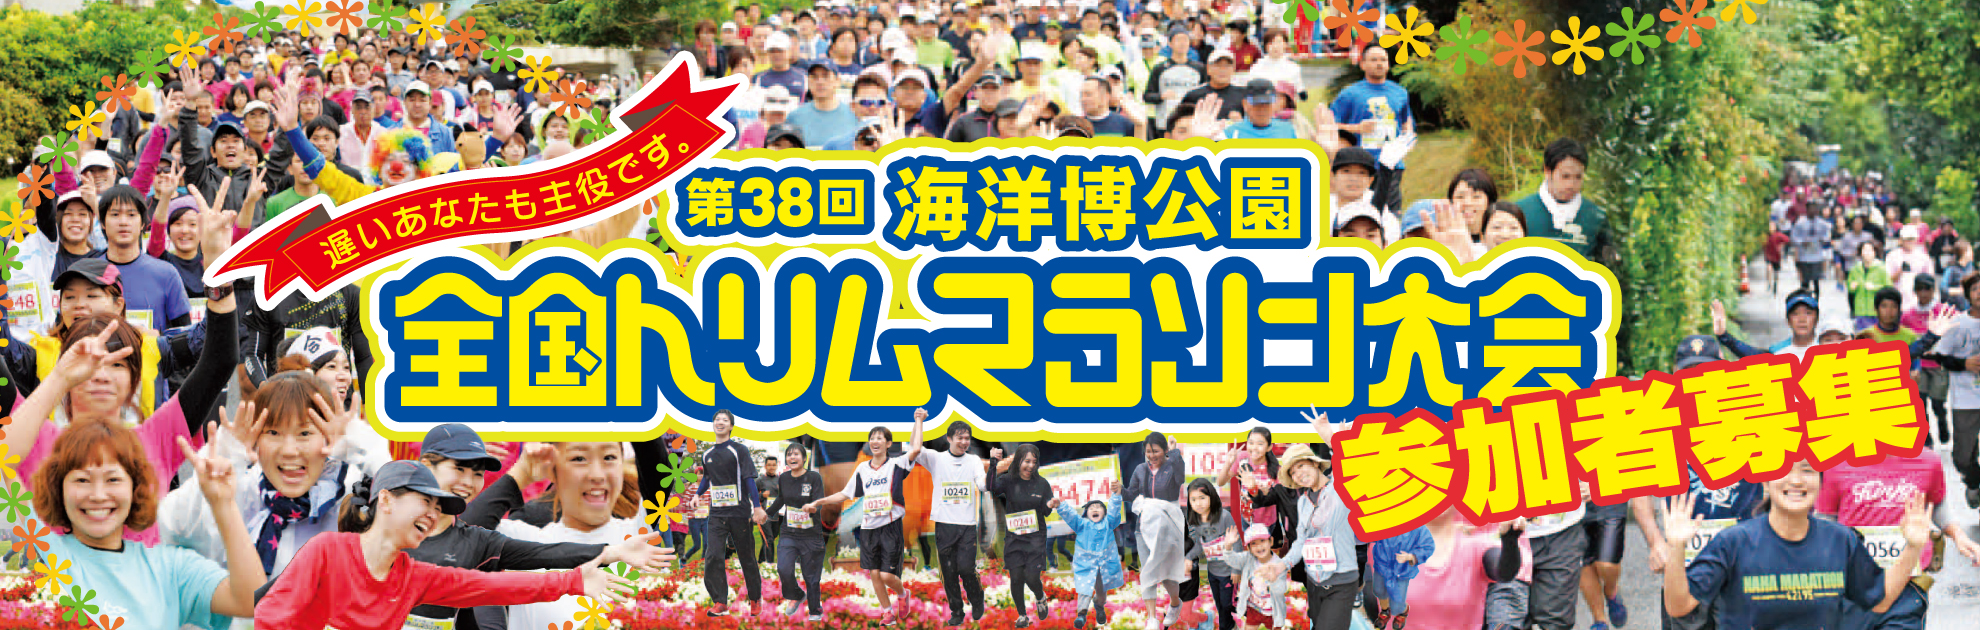 Under recruitment of the 38th Ocean Expo Park whole country trim marathon conventionalists!